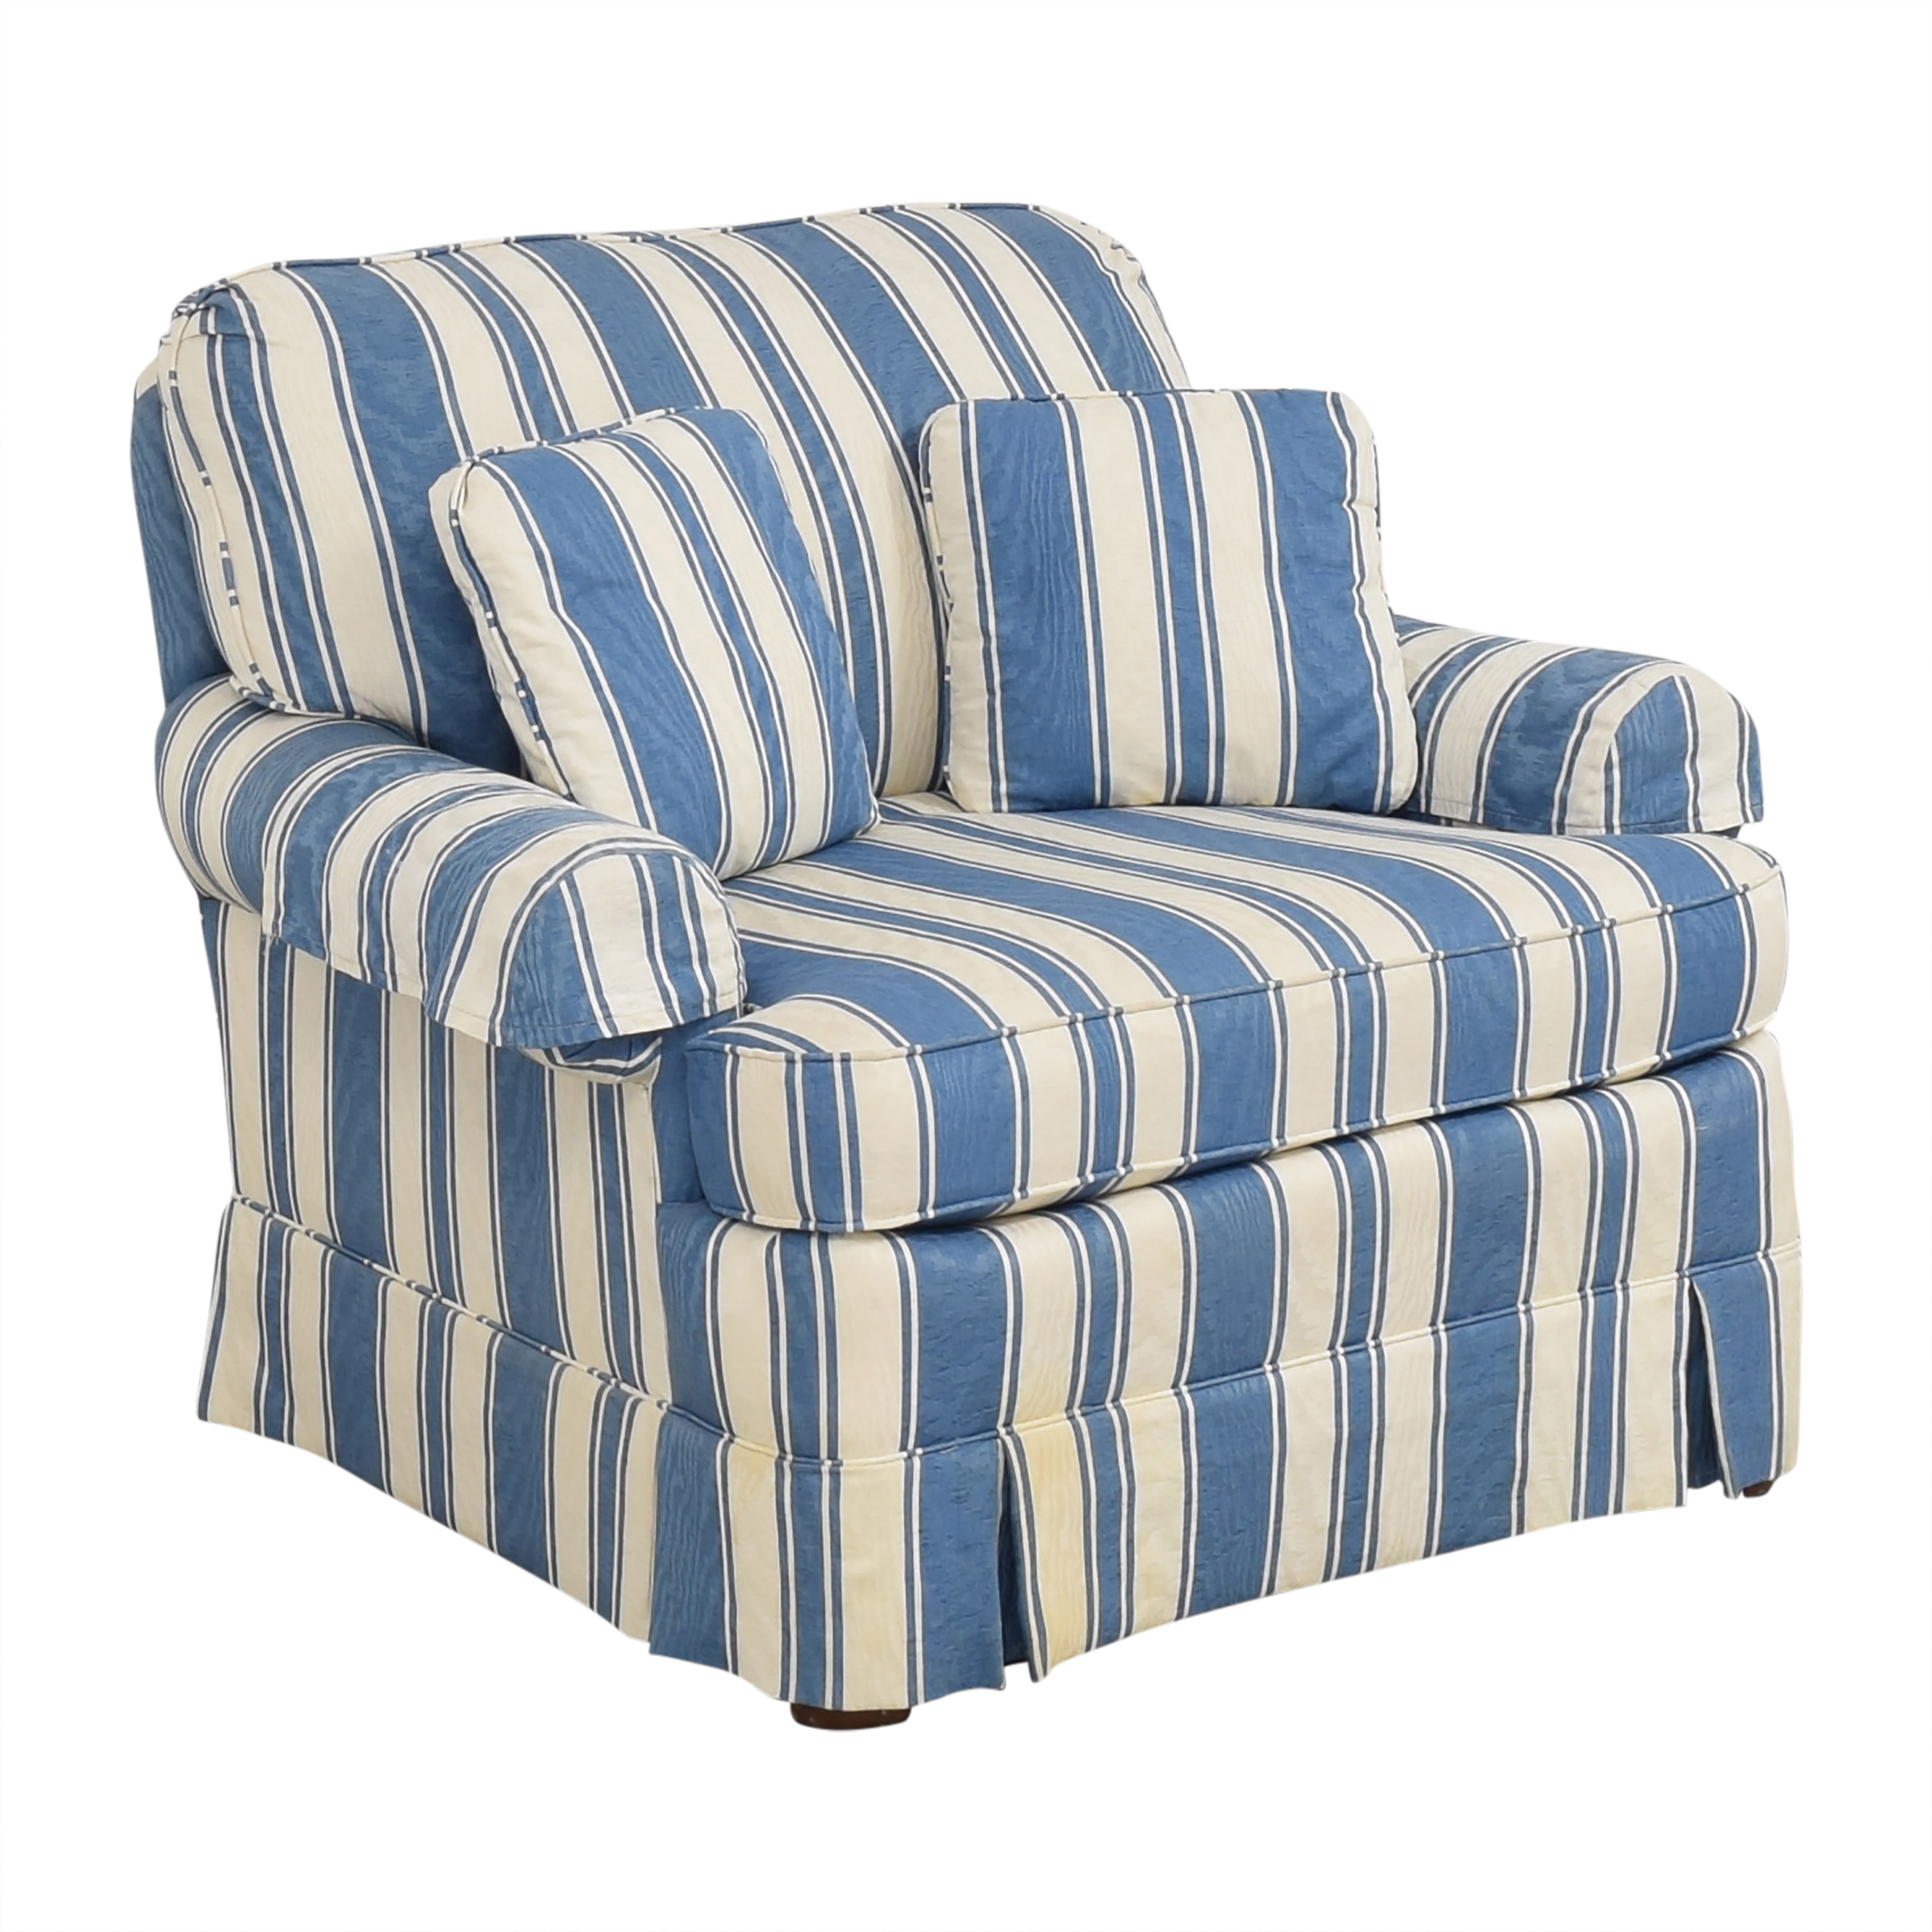 Clayton Marcus Clayton Marcus Striped Accent Chair ma